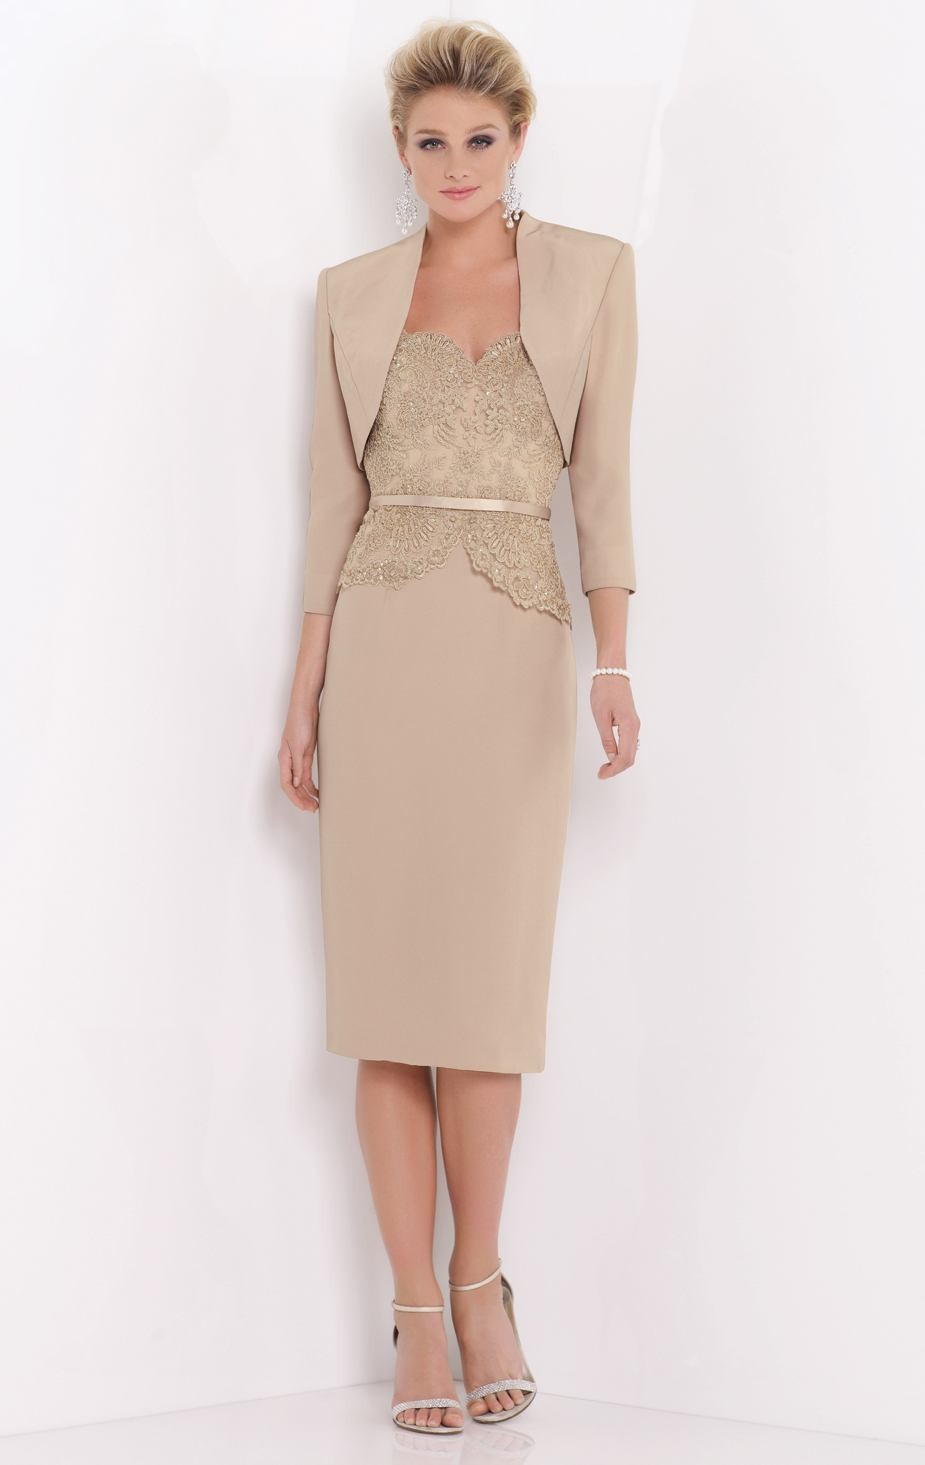 Charming Khaki Mid-Calf Mother Of The Bride Dress With Three Quarter Sleeve Jacket High Quality Mother Of The Bride Dress